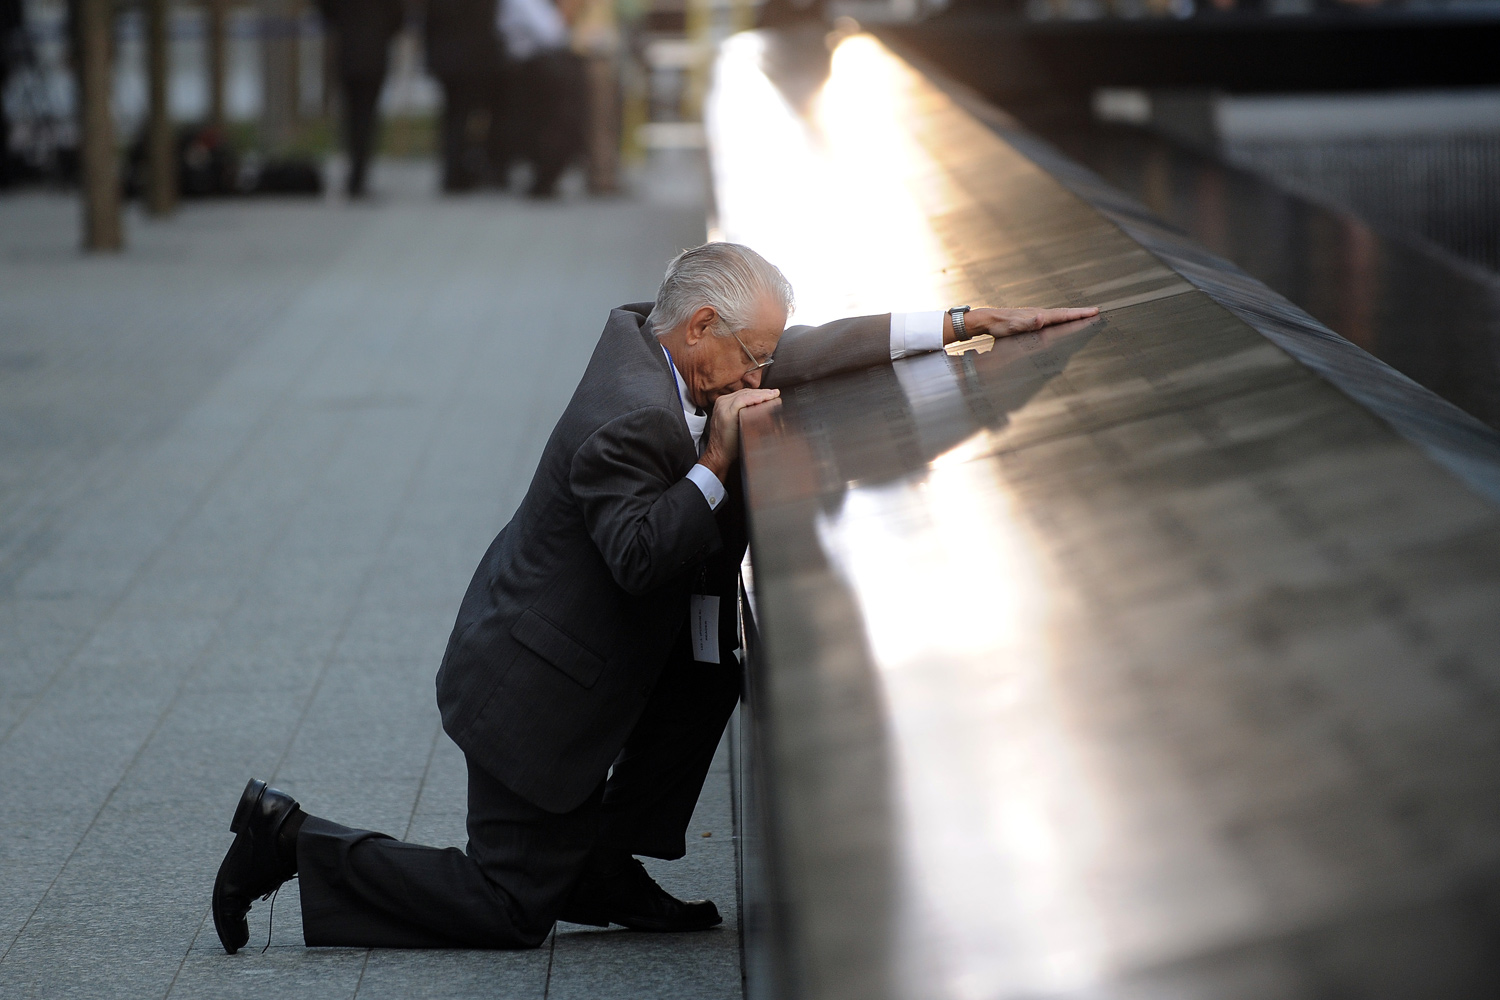 September 11, 2011.  Robert Peraza, who lost his son Robert David Peraza, pauses at his son's name at the North Pool of the 9/11 Memorial during tenth anniversary ceremonies at the site of the World Trade Center in New York City.